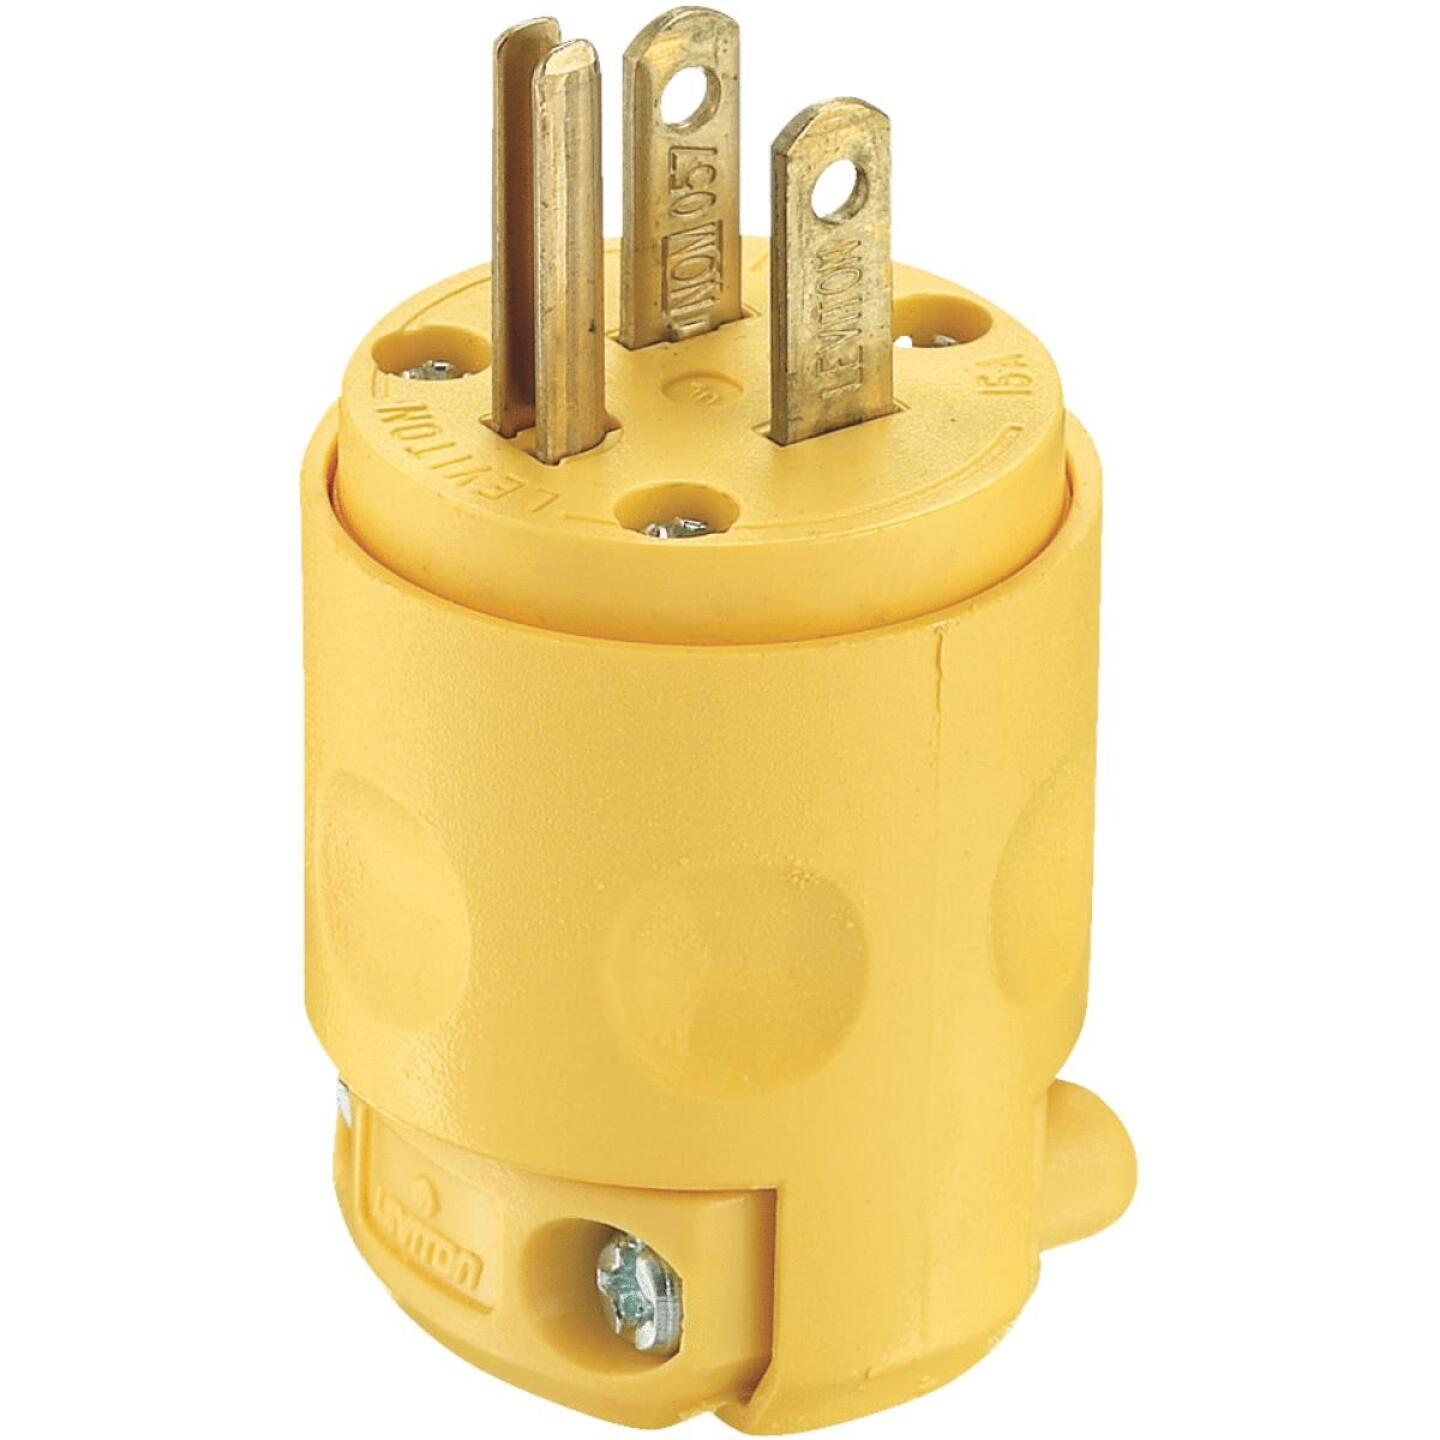 Do it 15A 125V 3-Wire 2-Pole Residential Grade Cord Plug Image 3